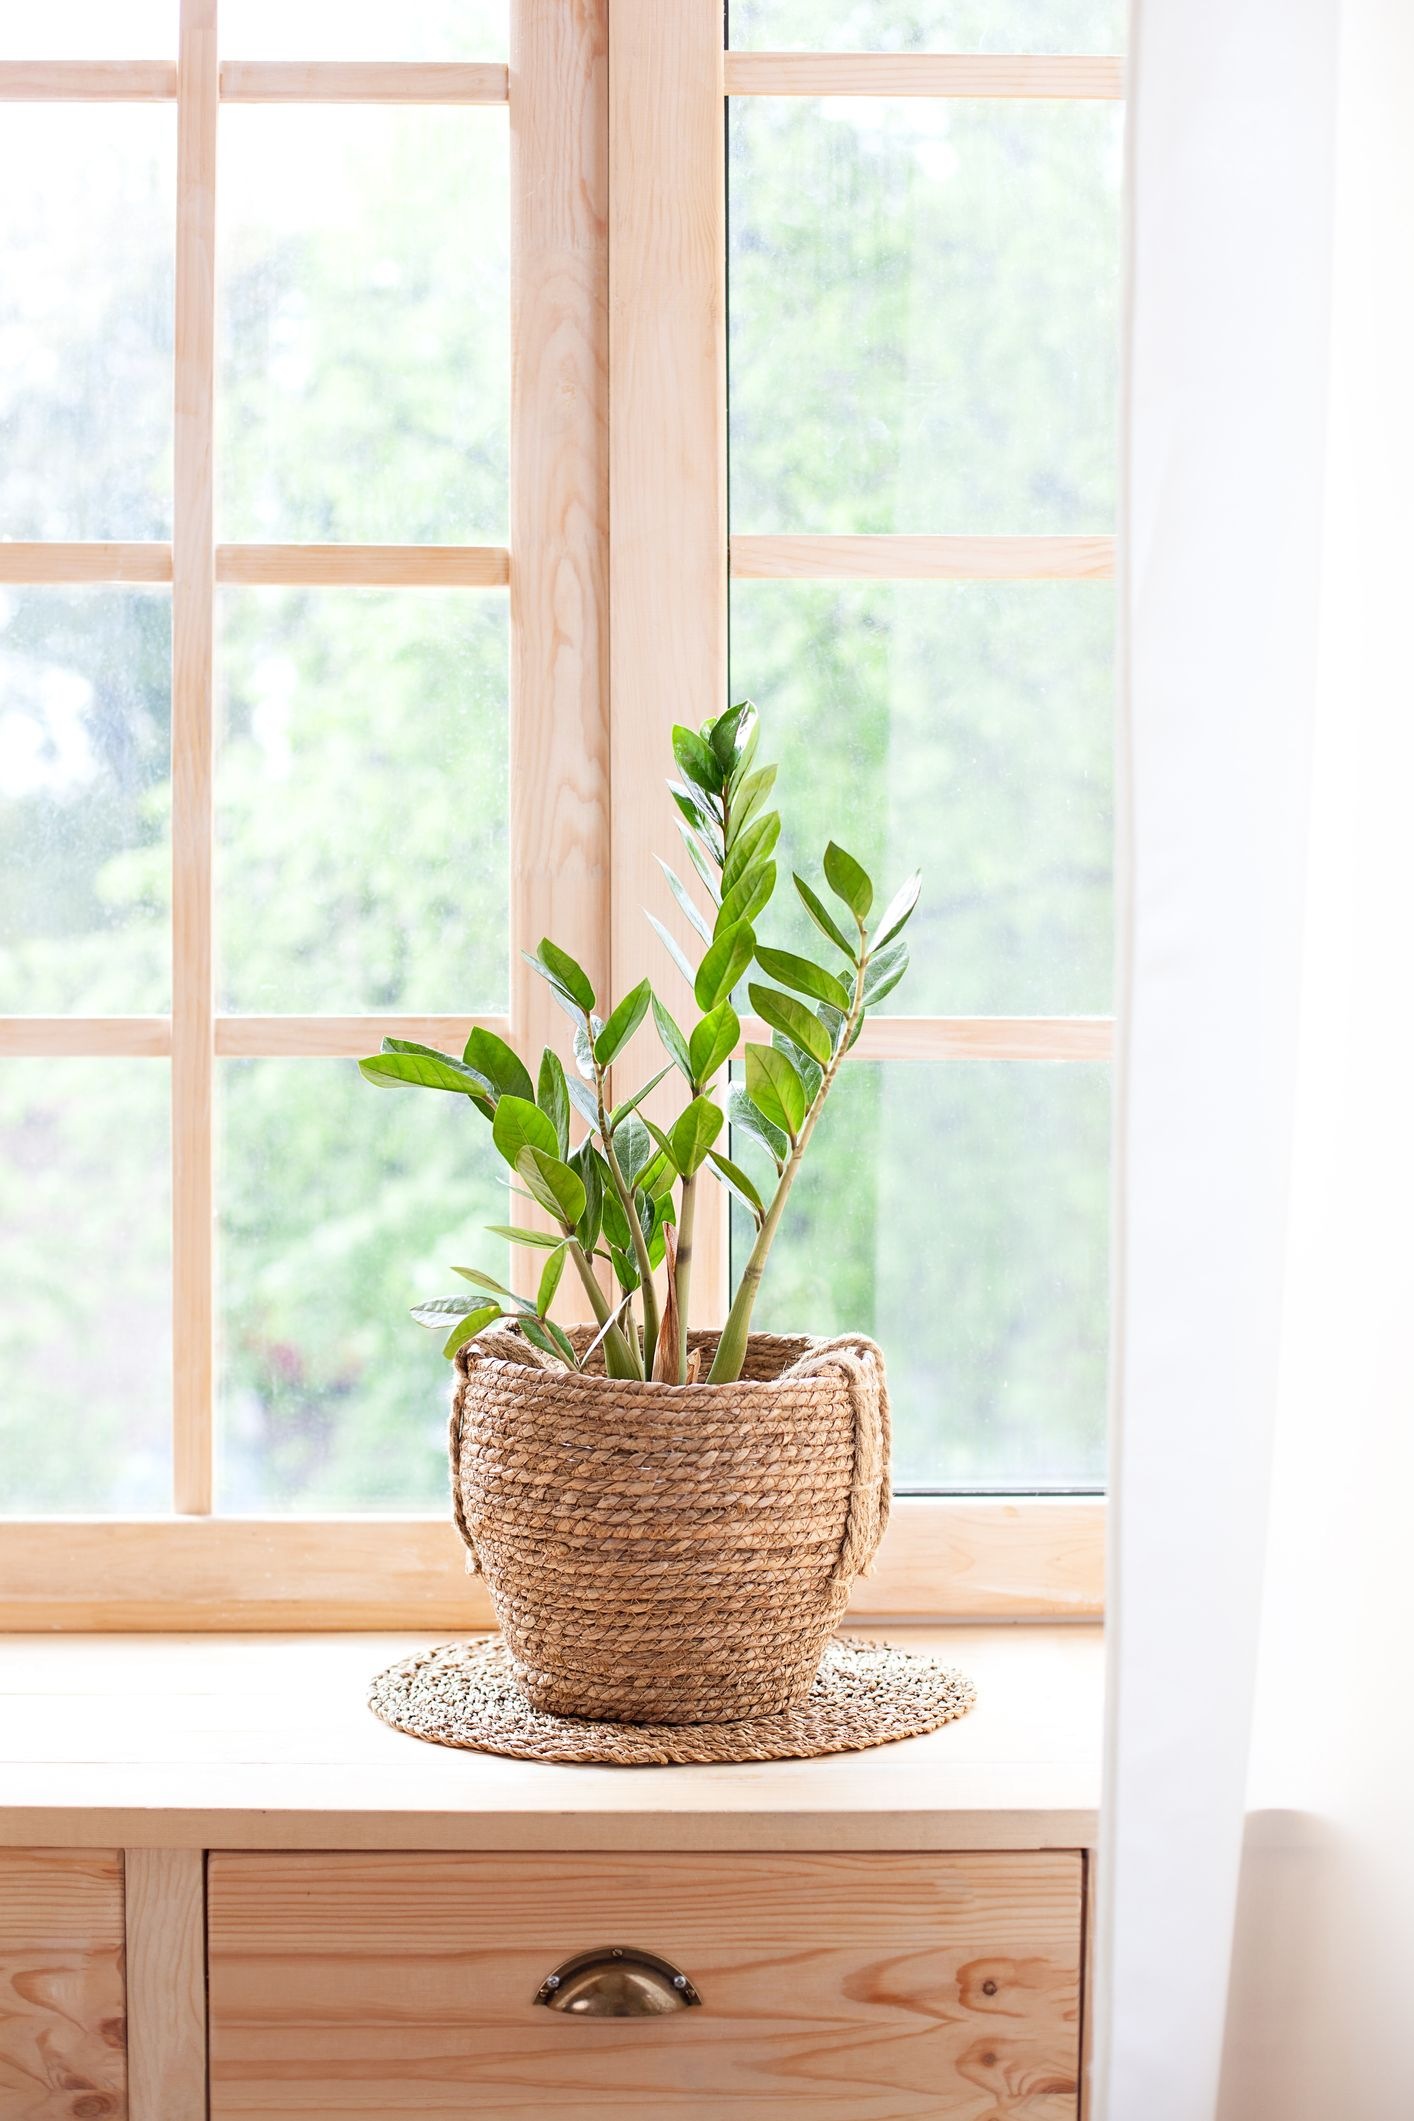 15 Best Bedroom Plants Plants For Bedroom That Clean Air